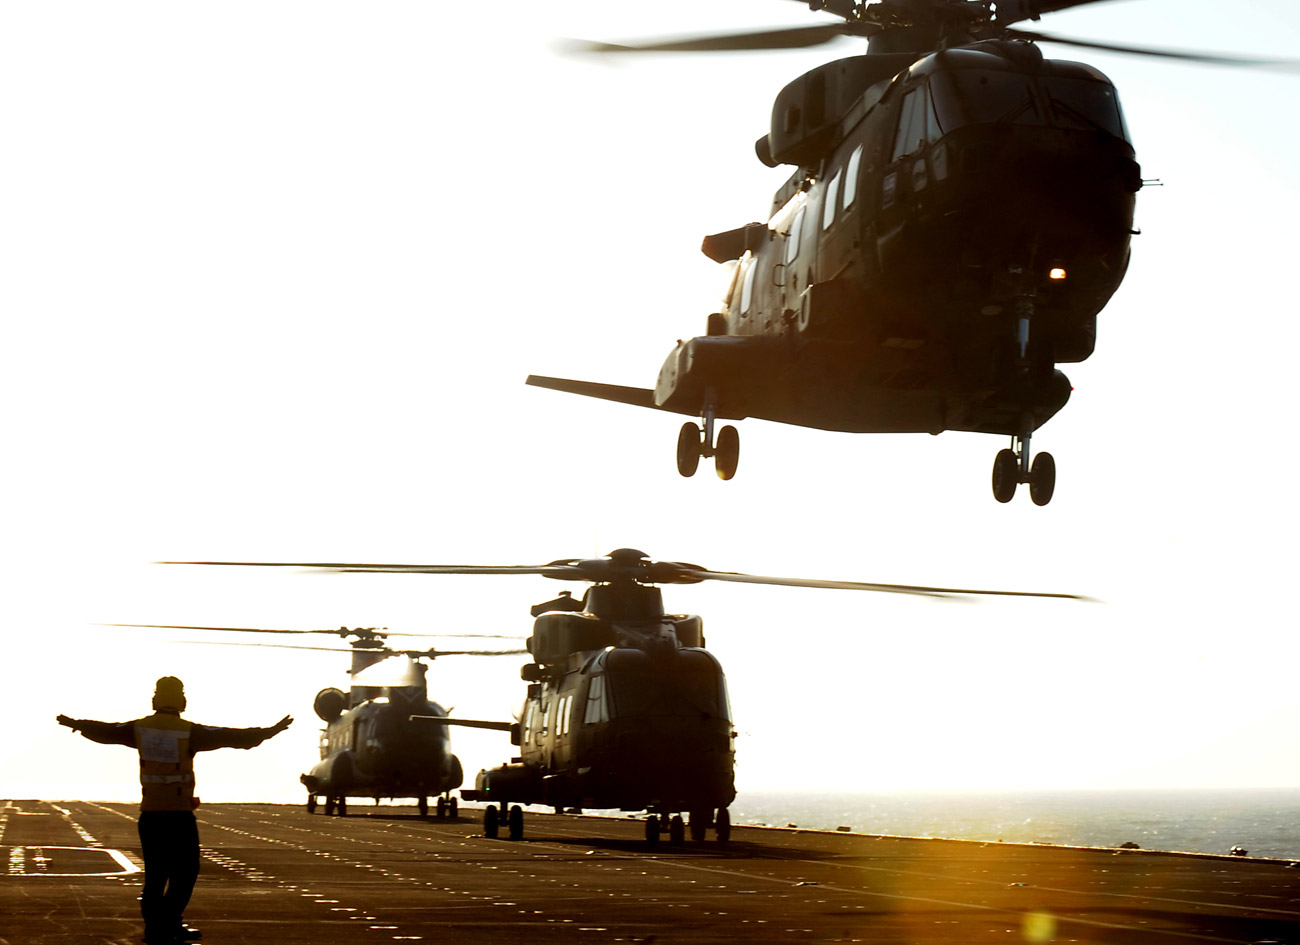 846 NAS 'crawl, walk, run' and fly on deck landing training